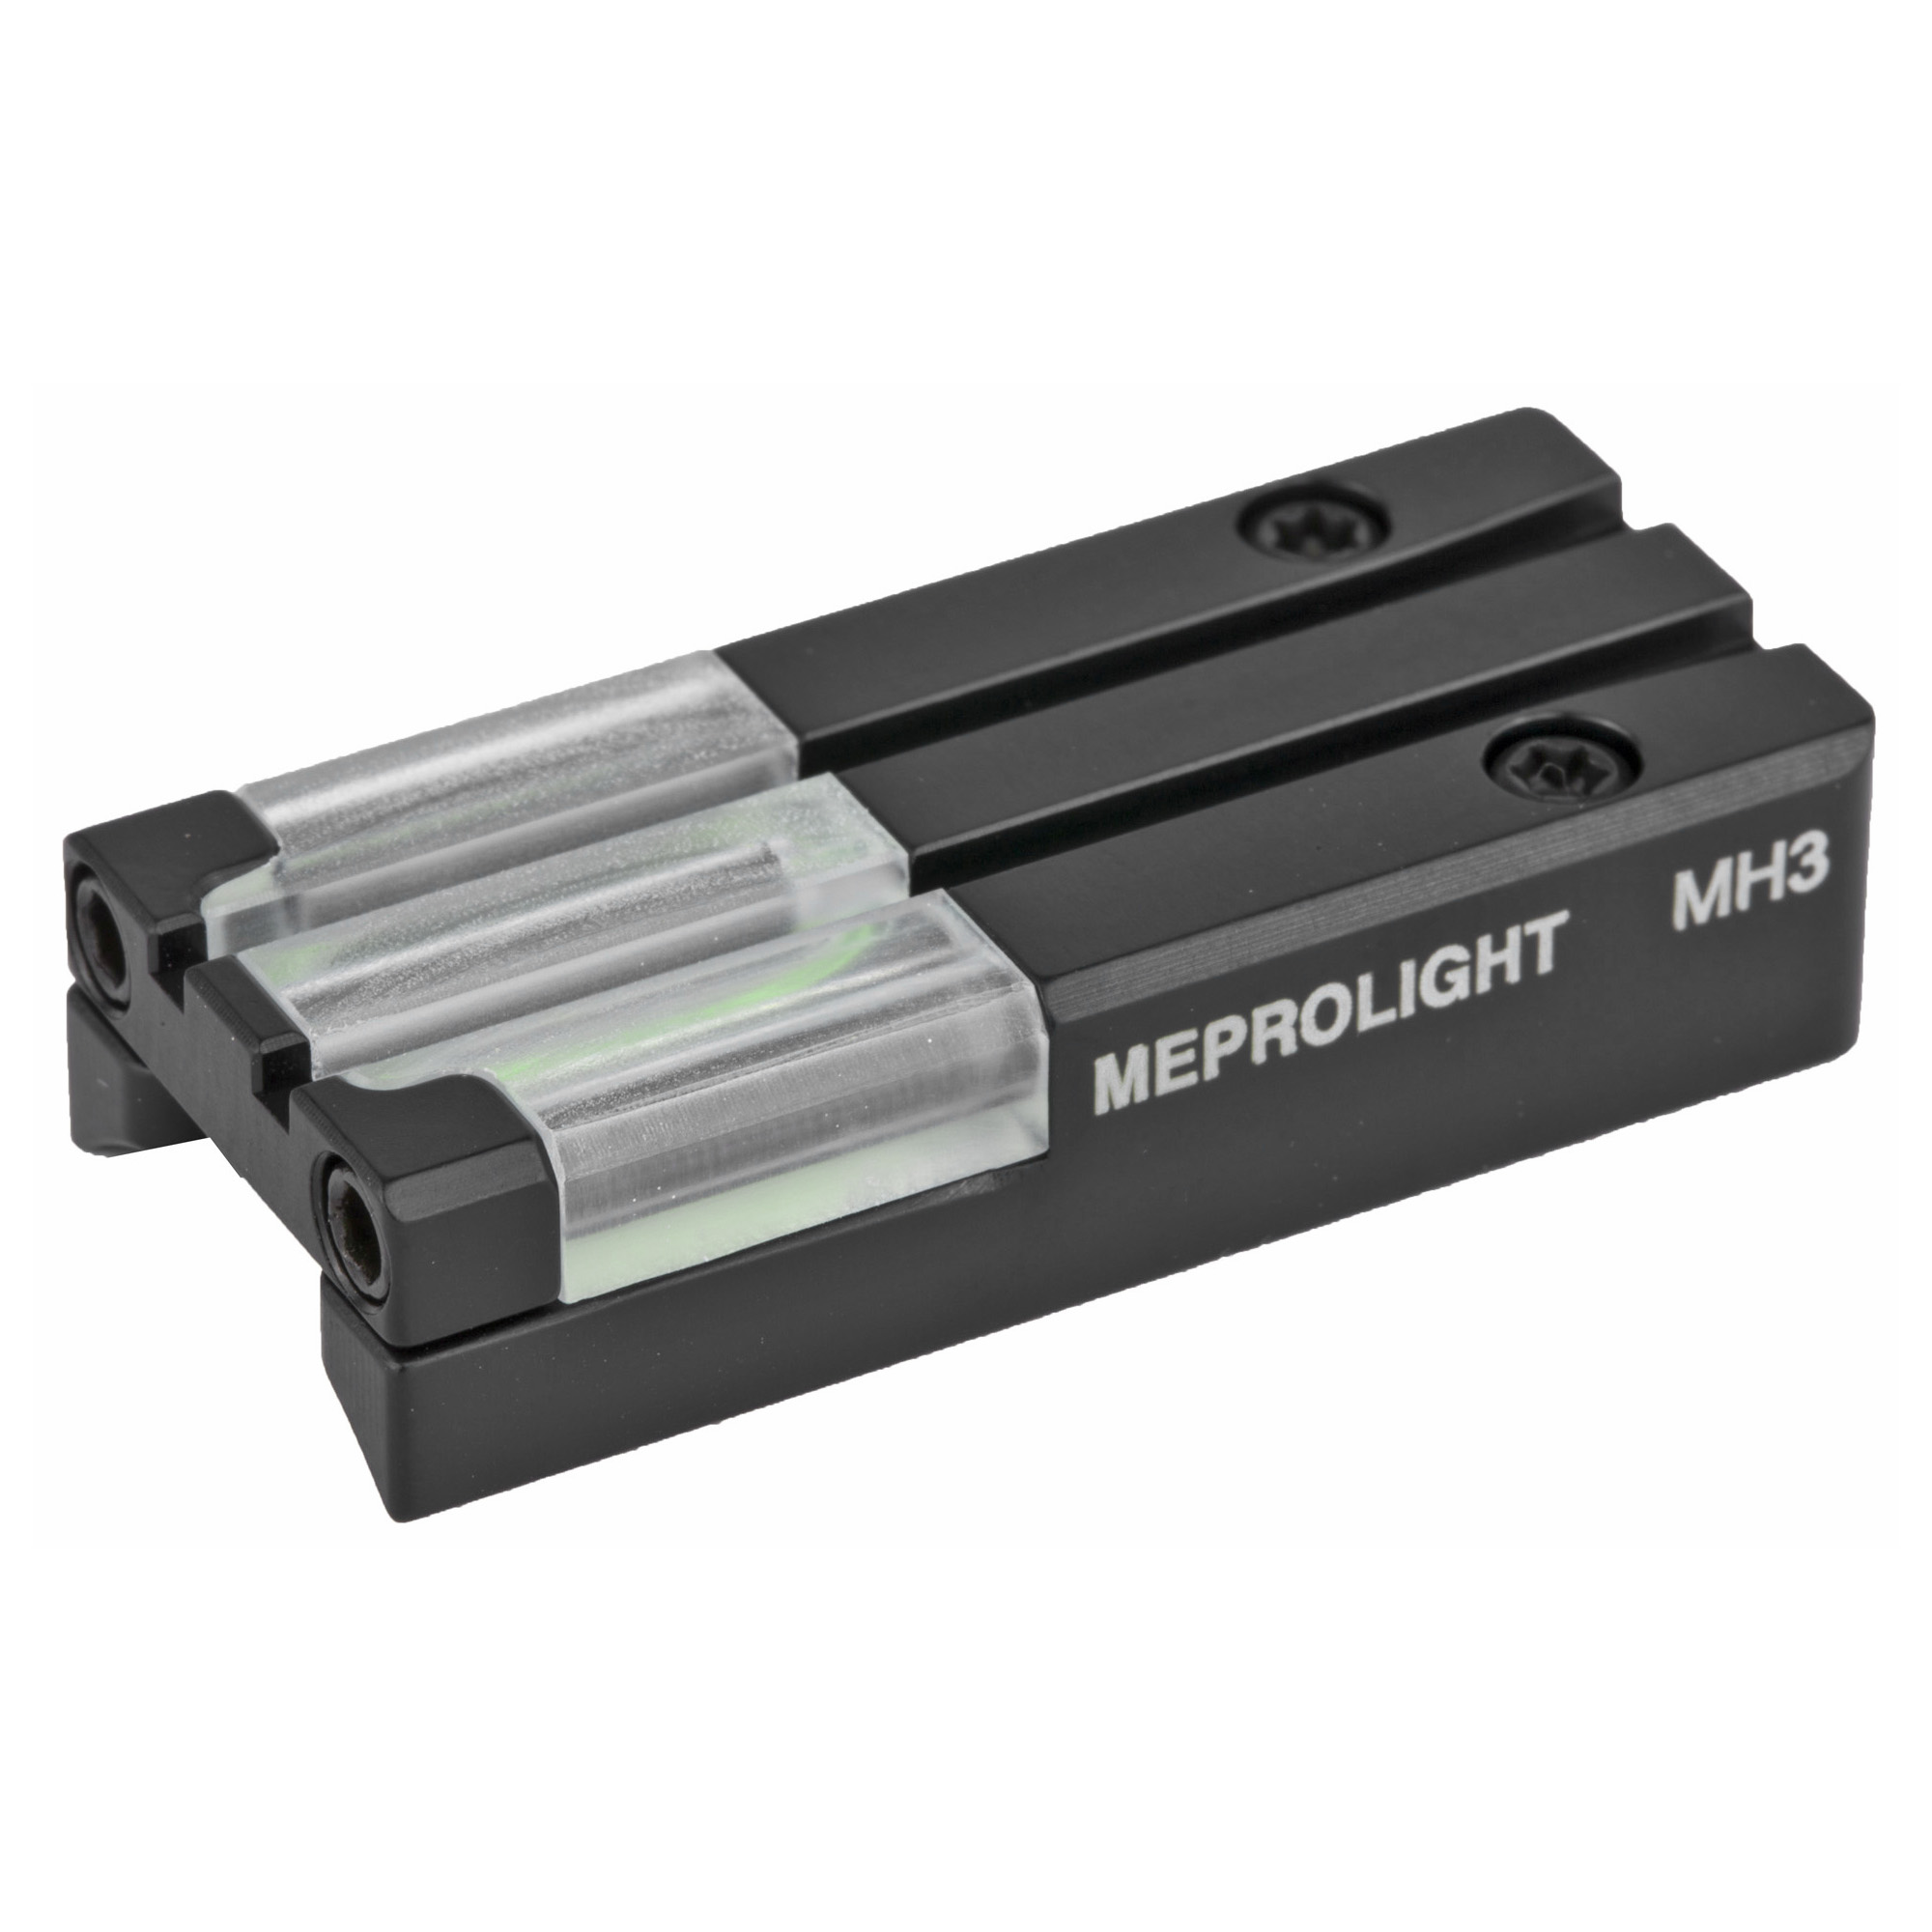 """MEPROLIGHT combat proven self-illuminated night sights enable you to hit stationary or moving targets under low-light conditions with dramatically increased hit probability. Designed as replacement parts for the standard weapon sights"""" MEPROLIGHT'S Self-Illuminated night sights can be mounted directly with minor modifications. Superior production methods and rigid quality control have made MEPROLIGHT the first choice among law enforcement agencies"""" defense decision makers and major weapon manufacturers."""